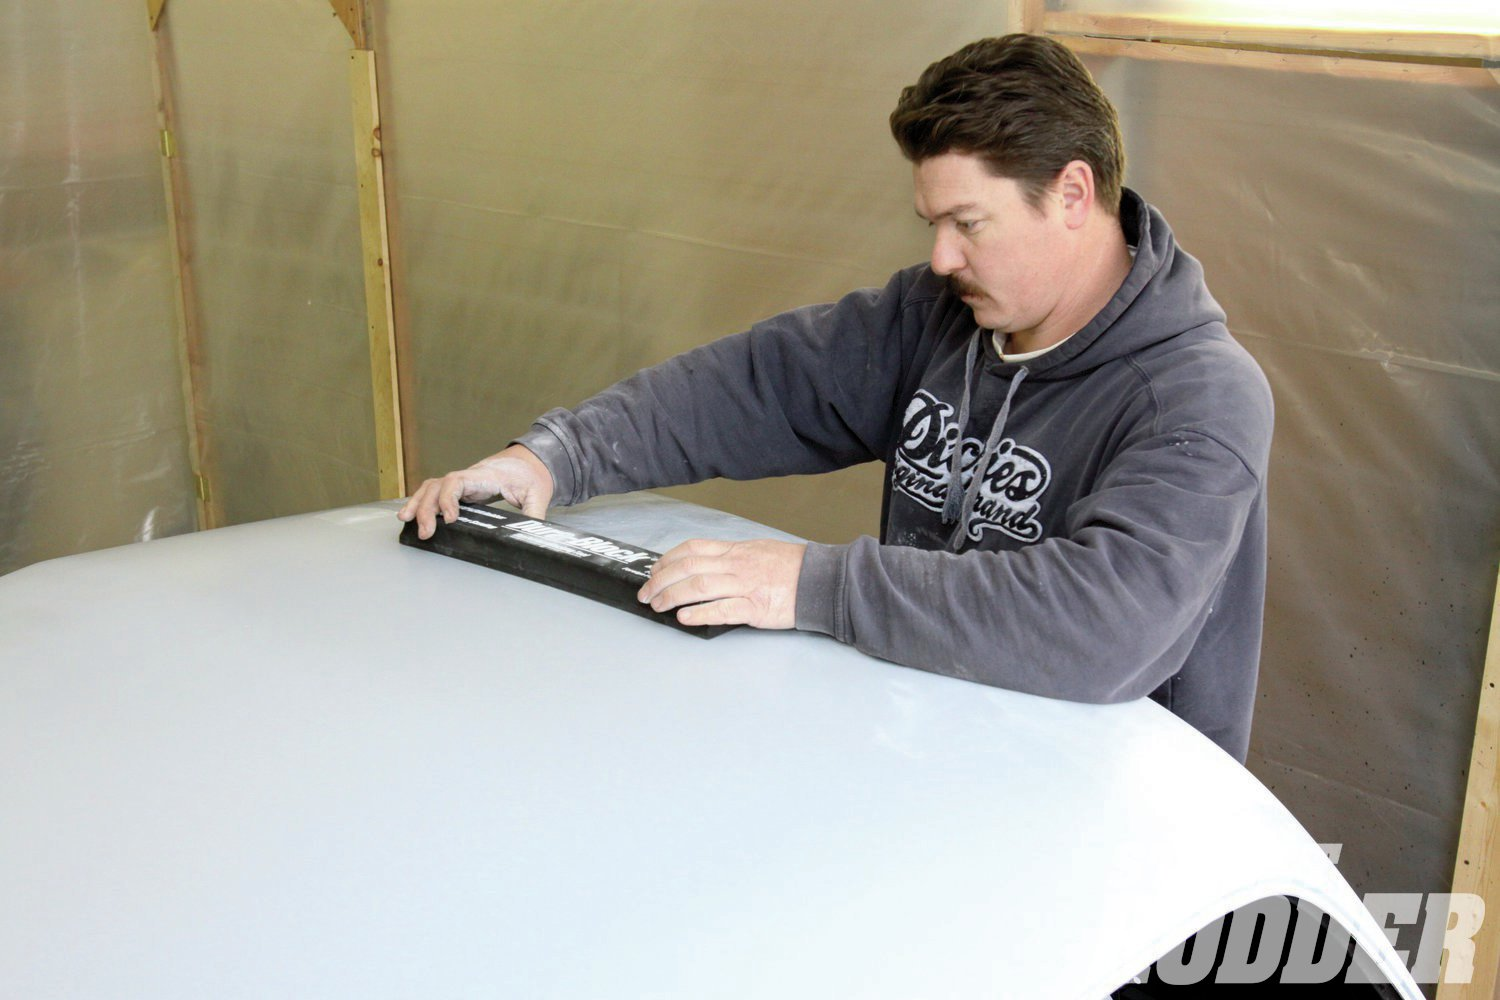 7. While the Plymouth's top looked good, Brazille's block sanding technique revealed signs of work done at some time in the coupe's past.